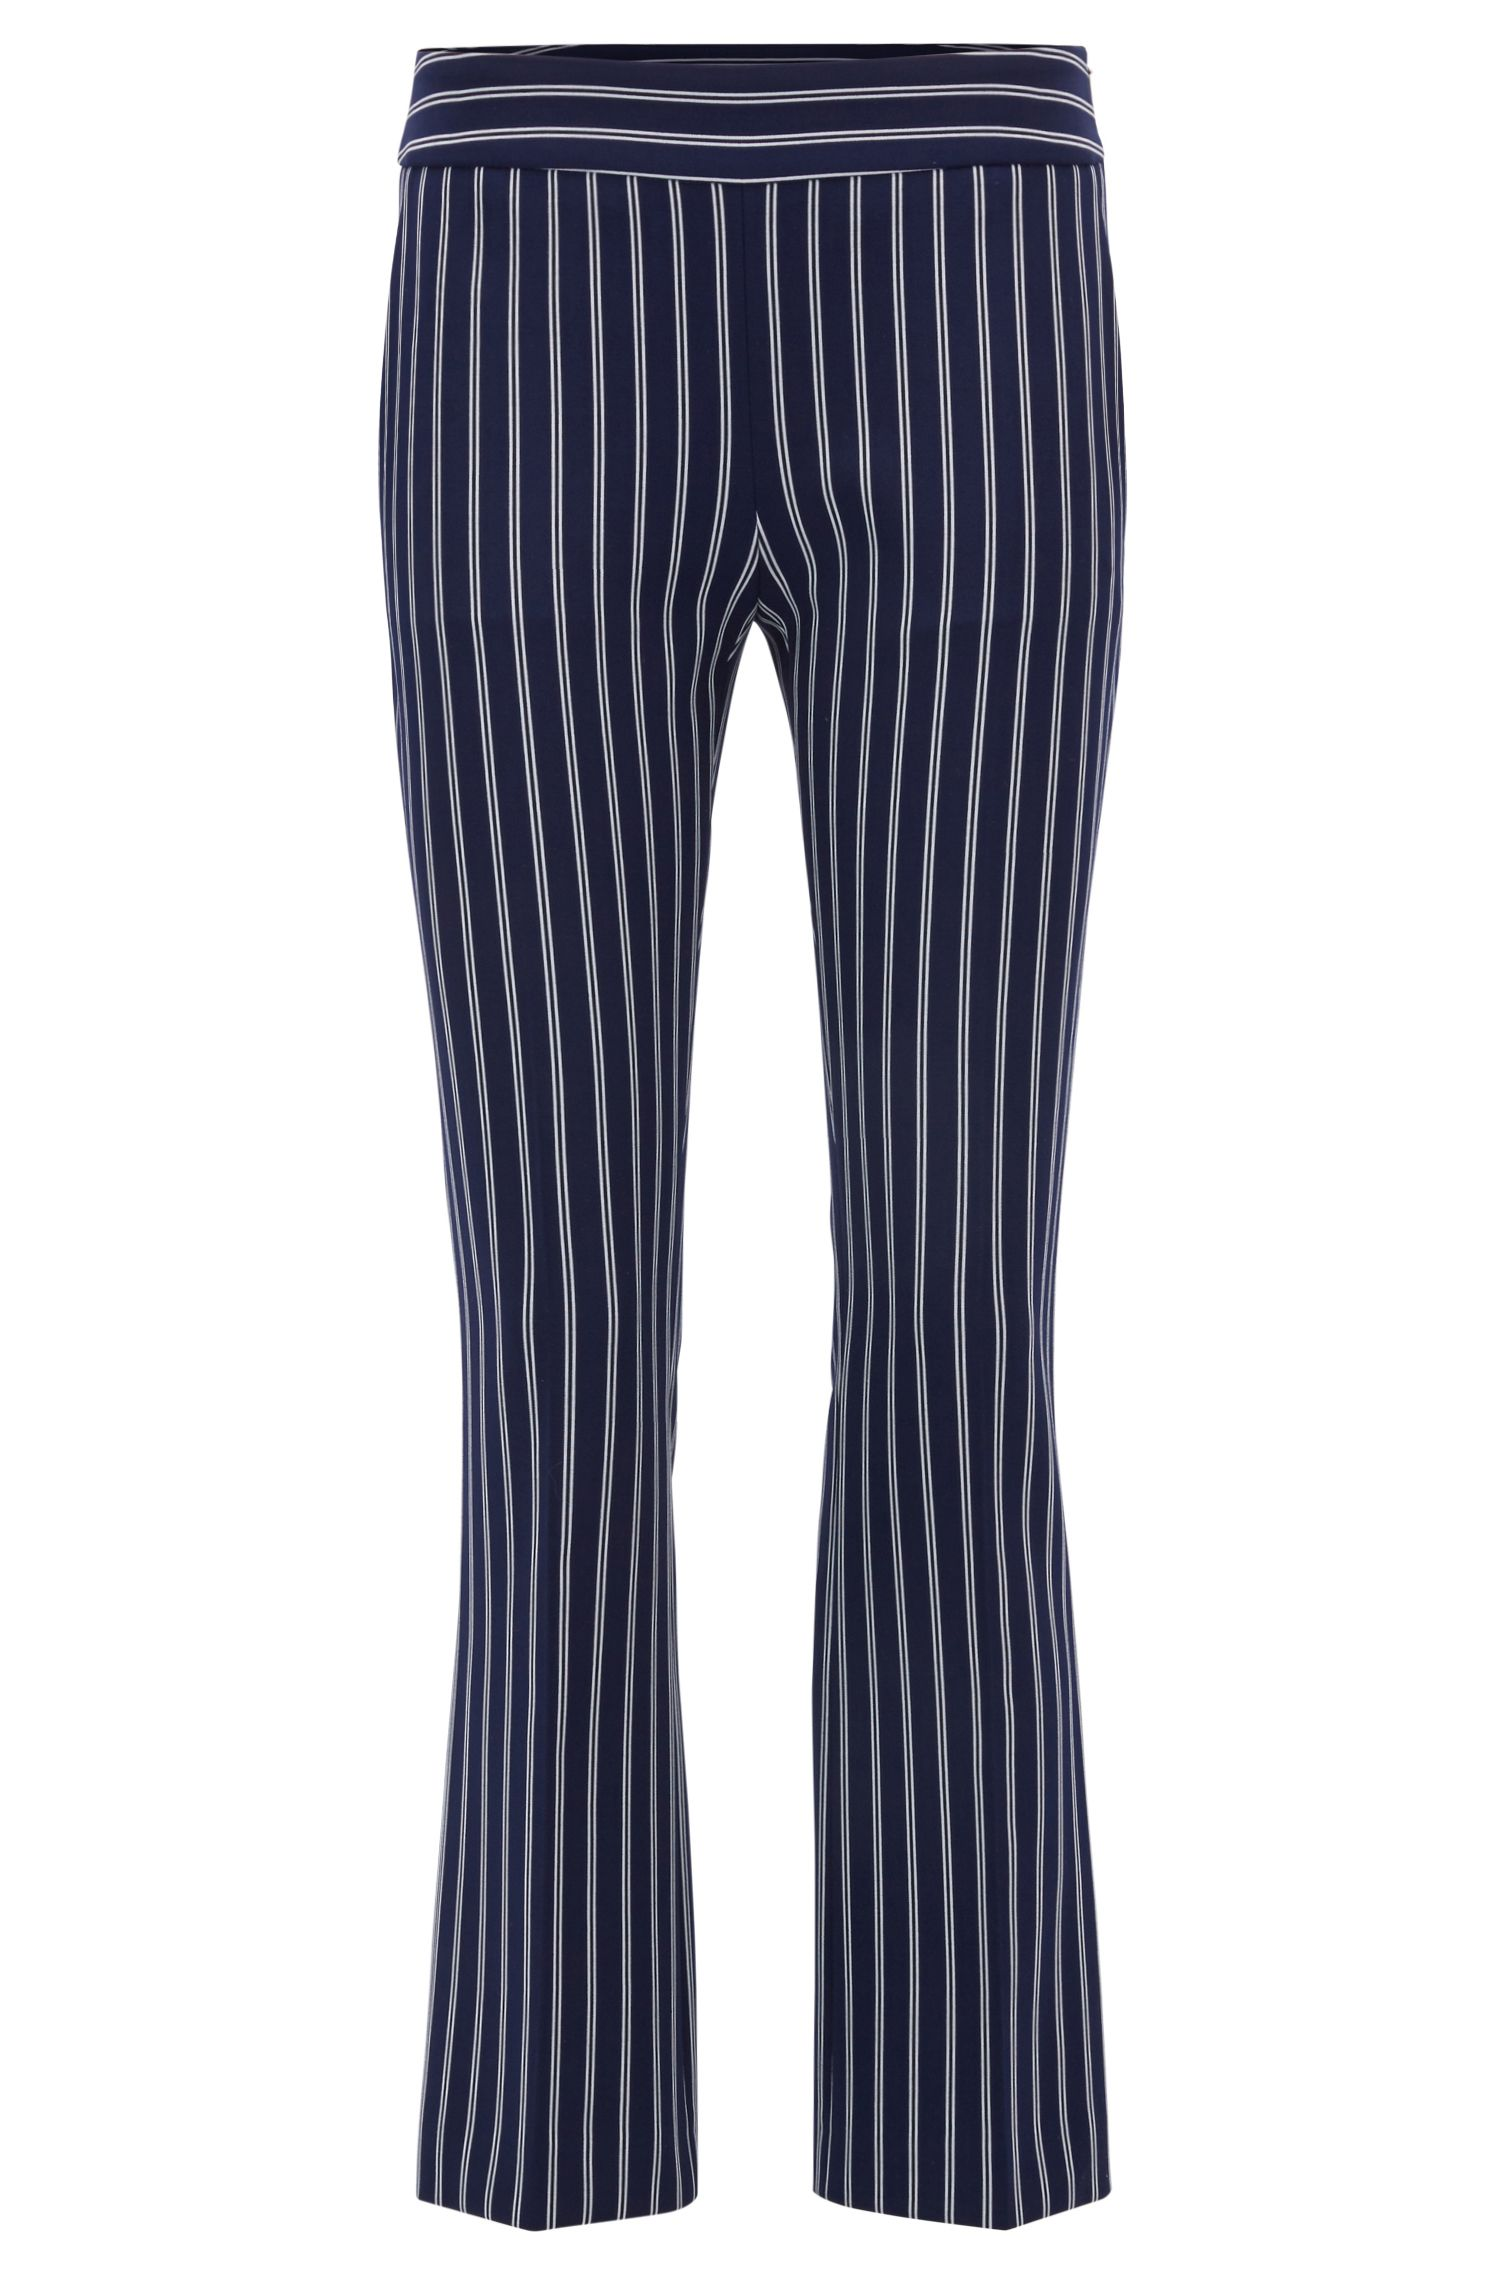 Striped Cropped Pant | Tebella